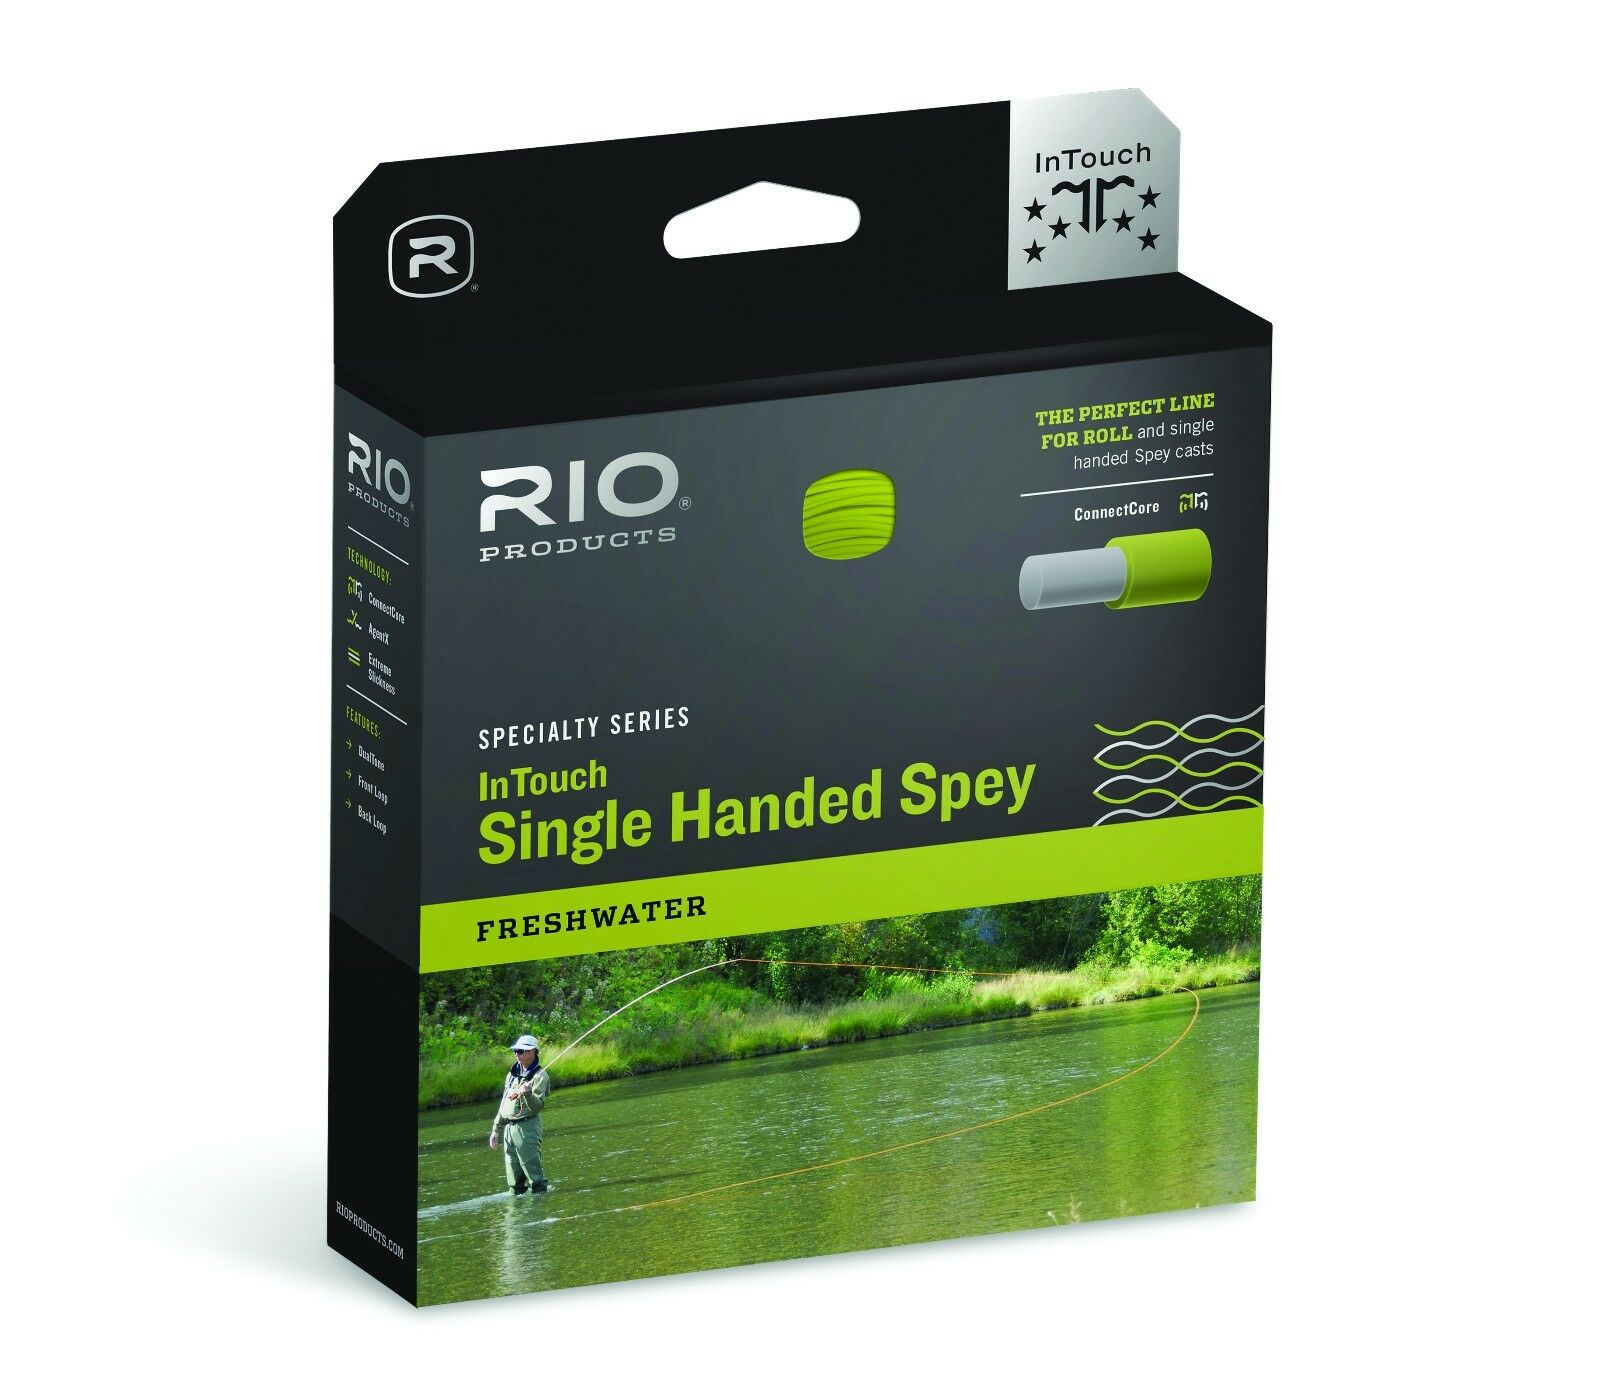 RIO InTouch Single Handed Spey 3D  WF5 FHI  New